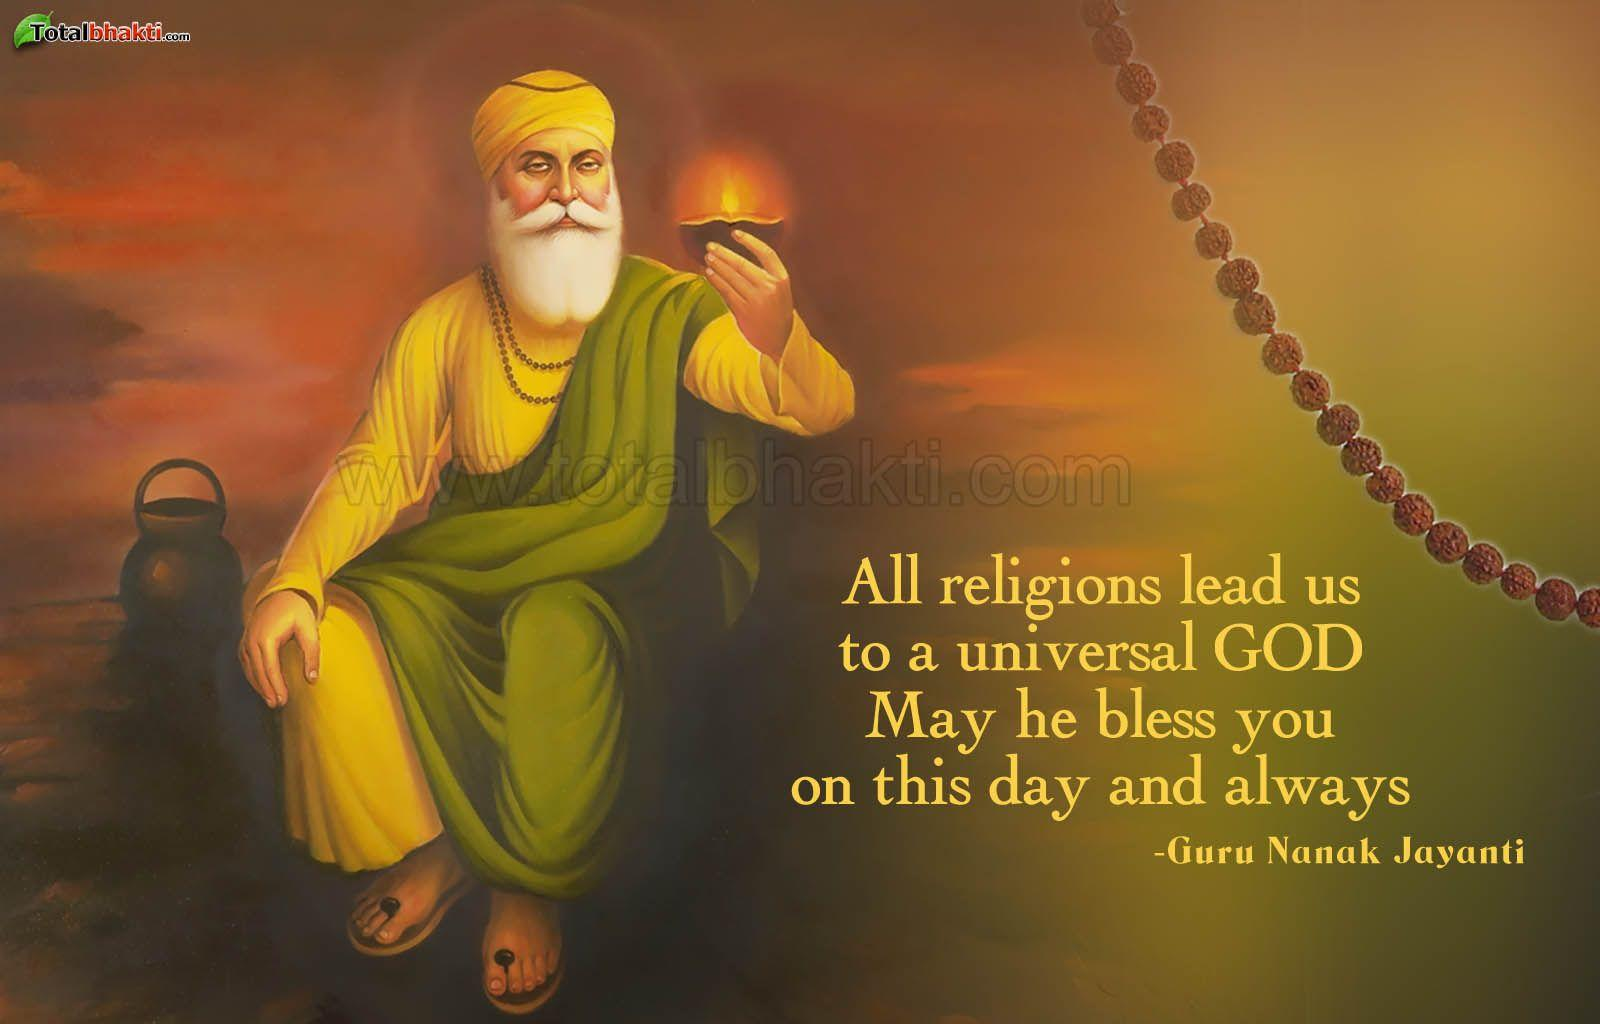 Festivals wallpaper, Hindu wallpaper, Guru Nanak Jayanti Wallpaper ...